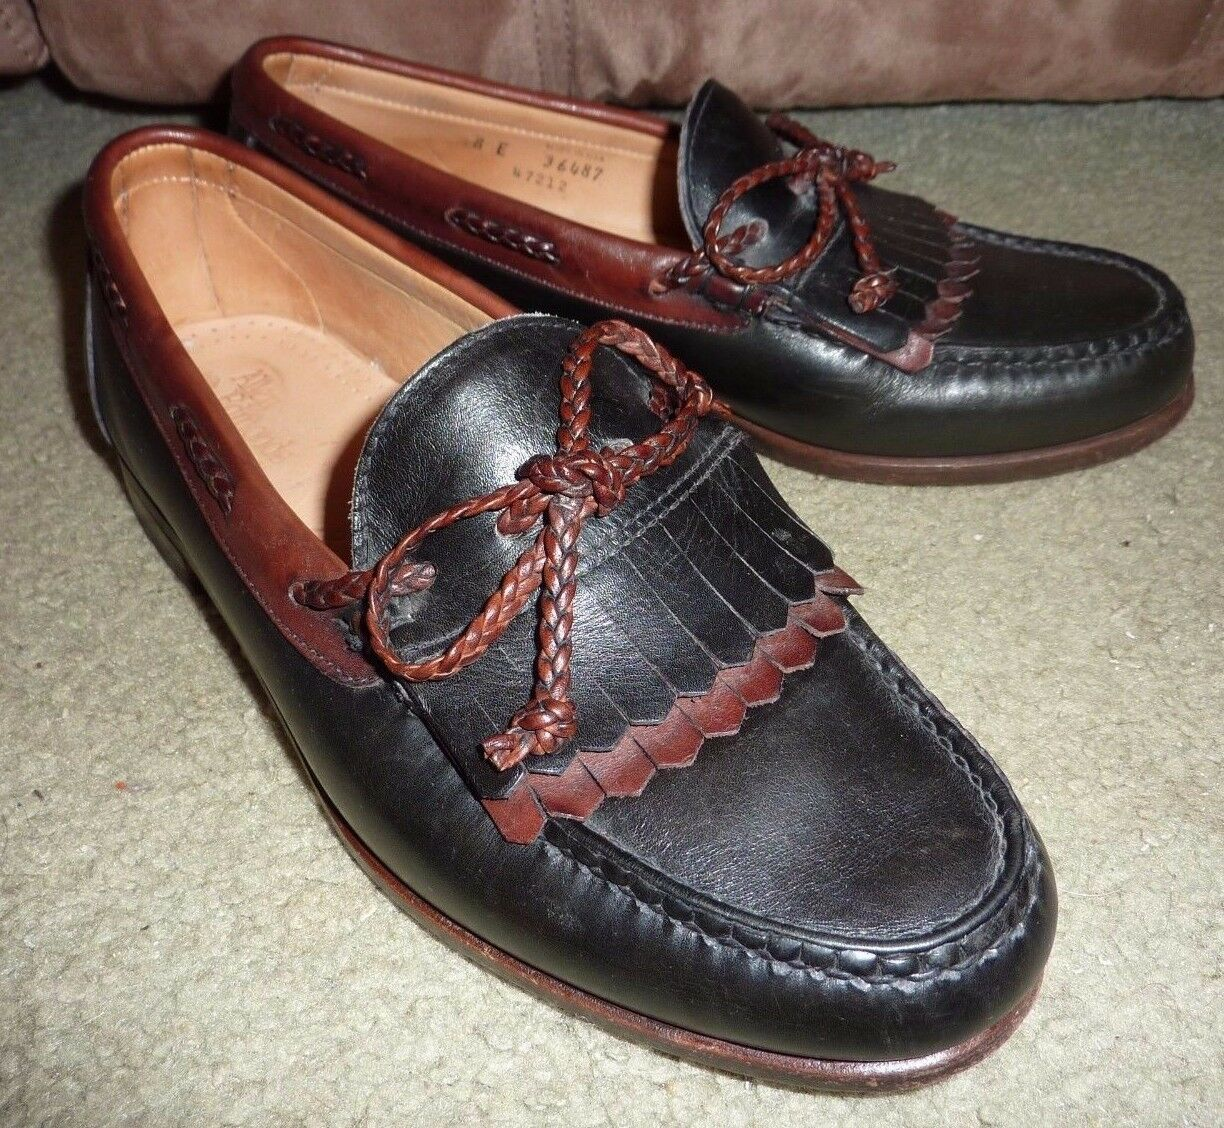 SZ 8E ALLEN EDMONDS WOODSTOCK MADE IN USA 2 TONE BROWN LEATHER MOCCASIN LOAFERS